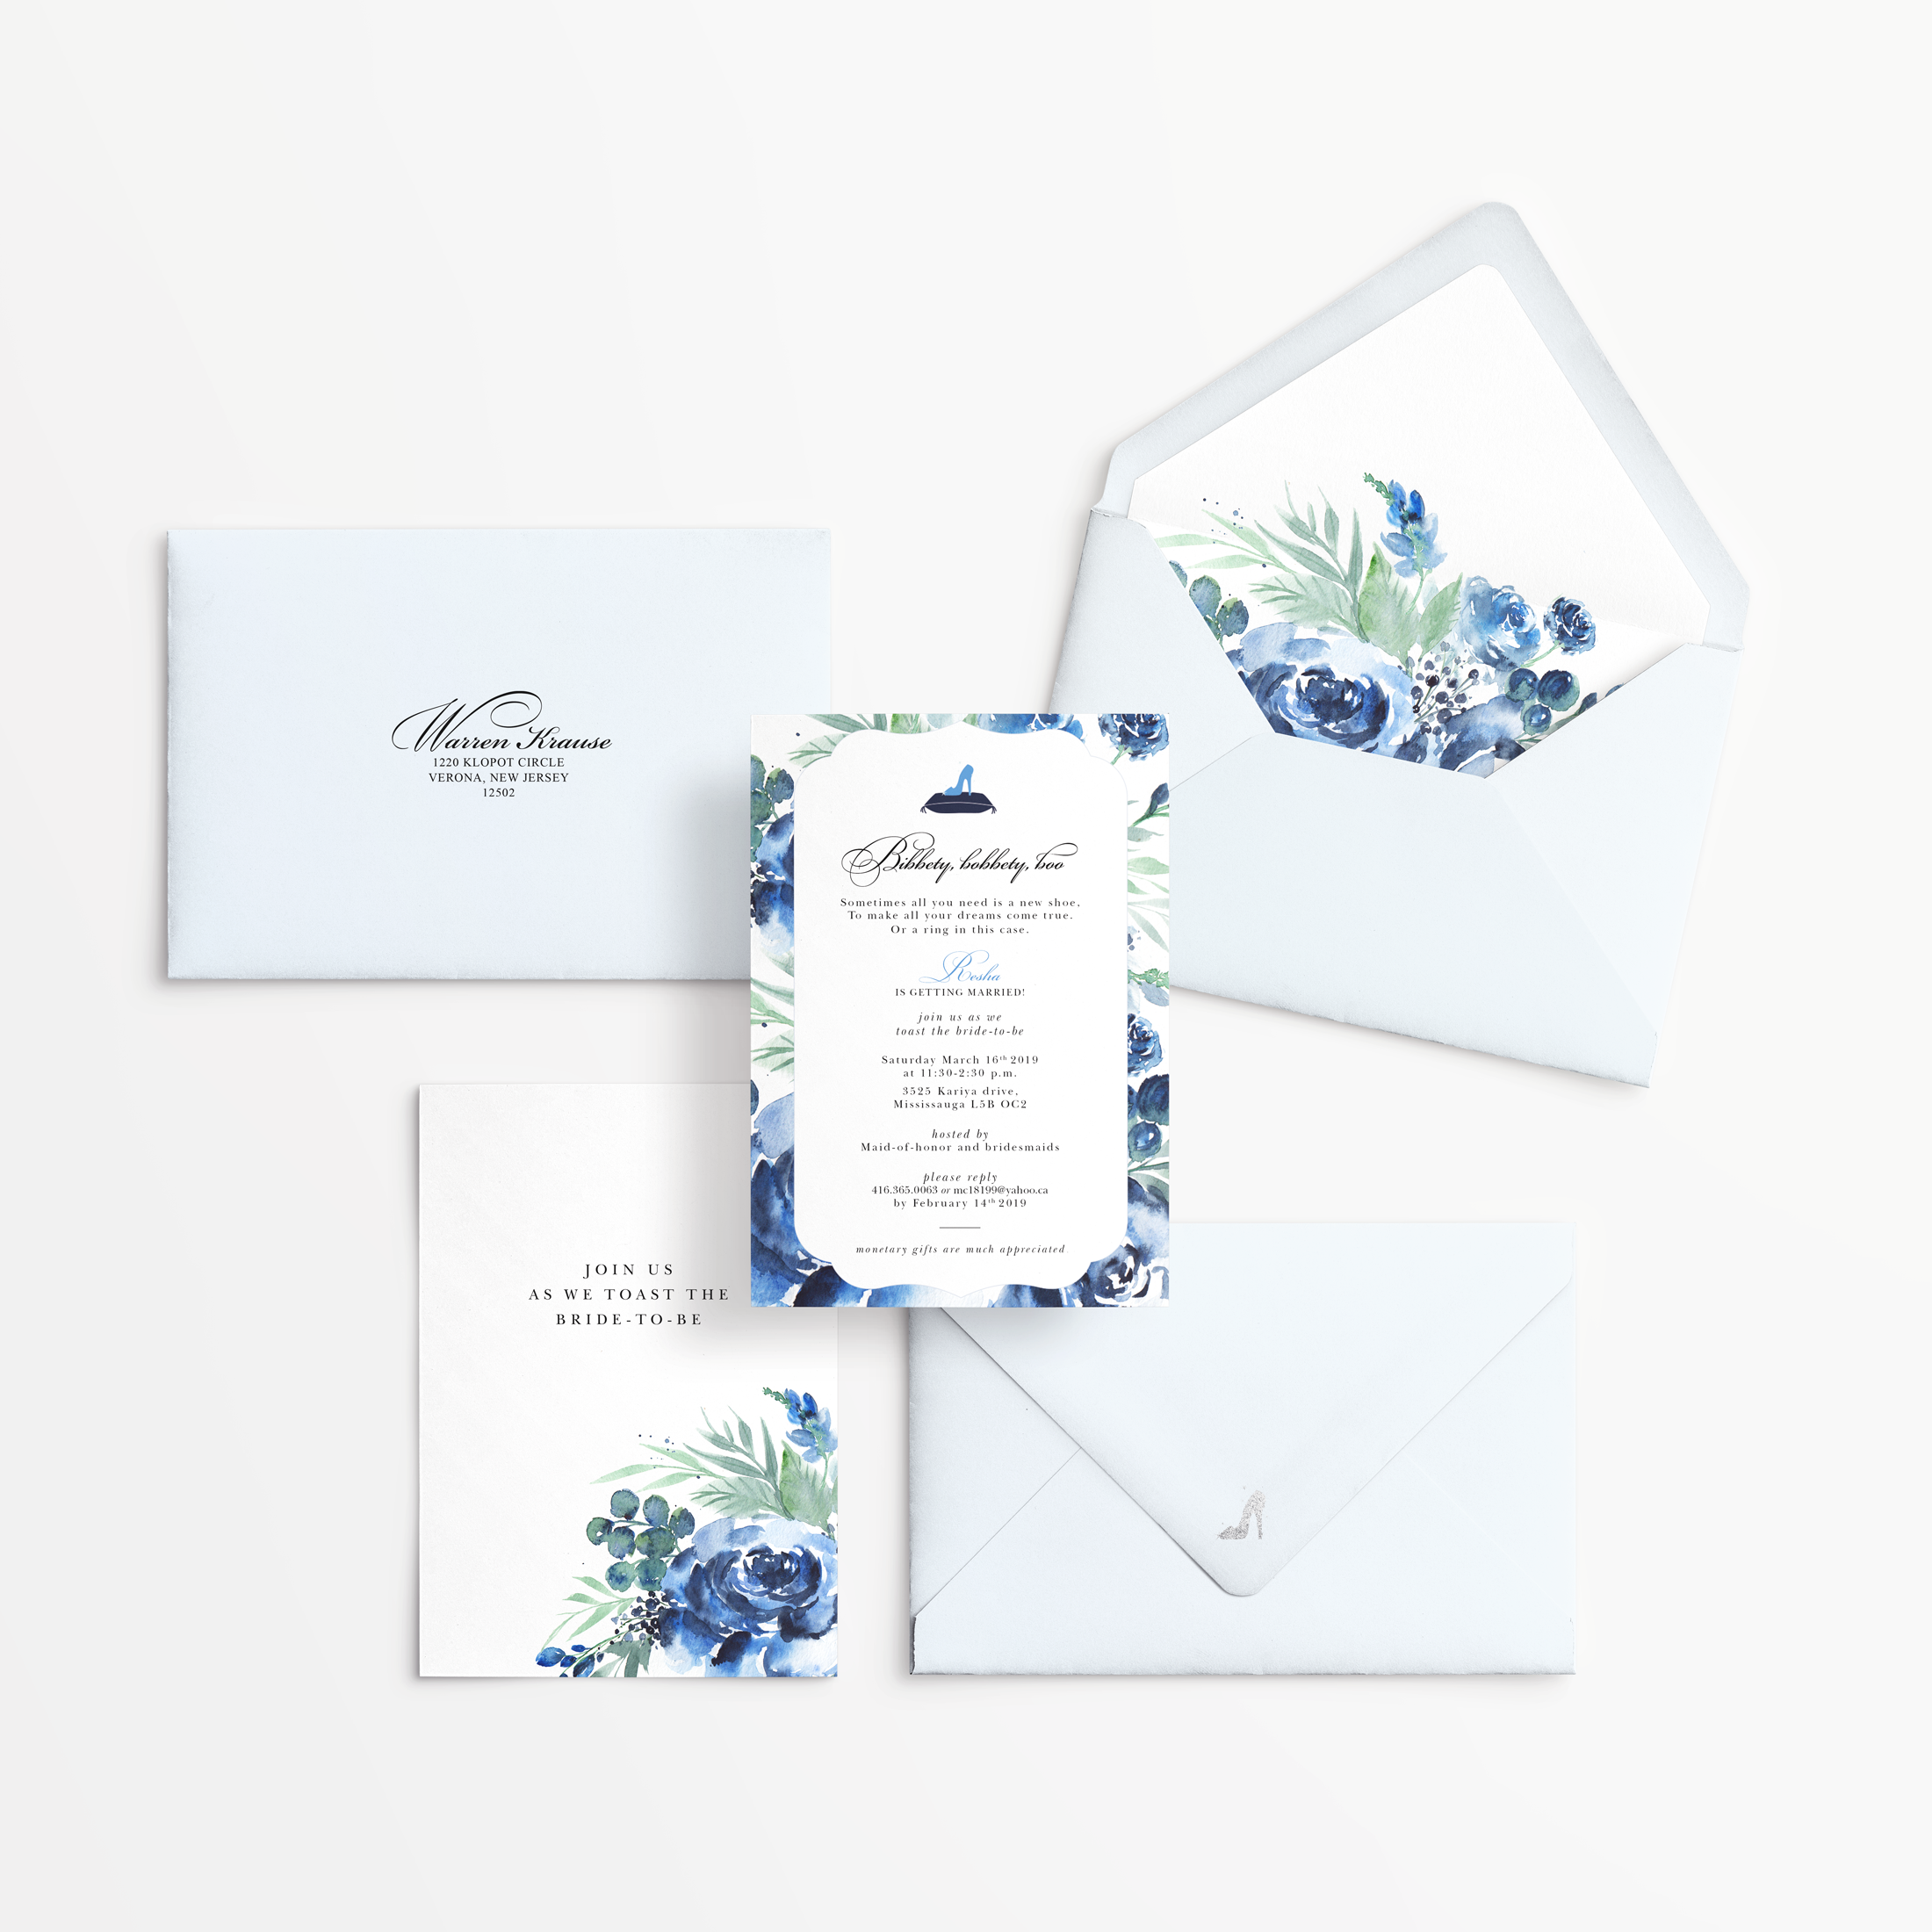 Cindrella-cards-and-envelopes-mockup